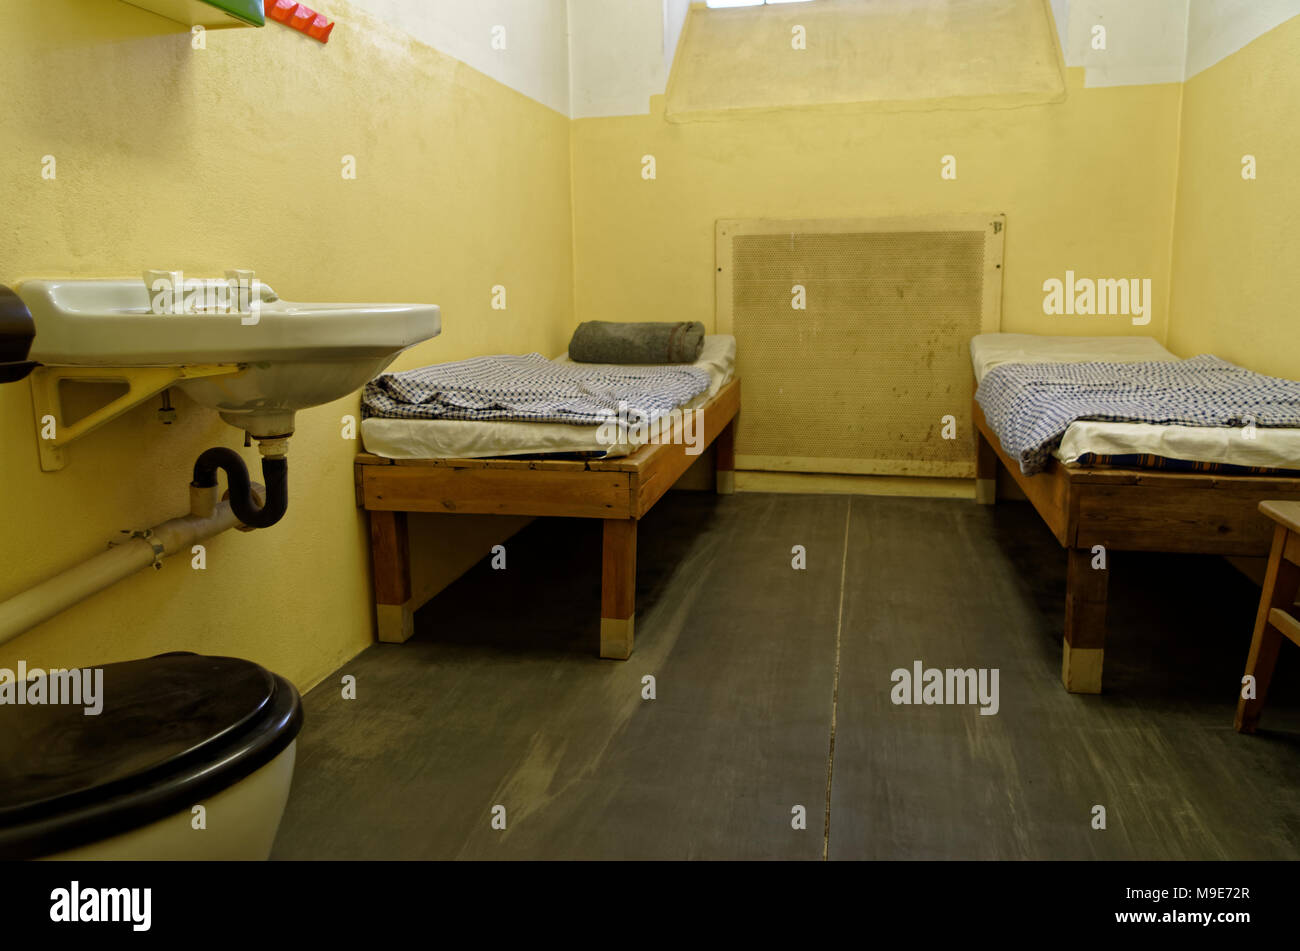 Leipzig, Germany - June 12, 2015. Jail cell with two bunk beds and sink are exposed in the Stasi Museum in Leipzig, Germany Stock Photo